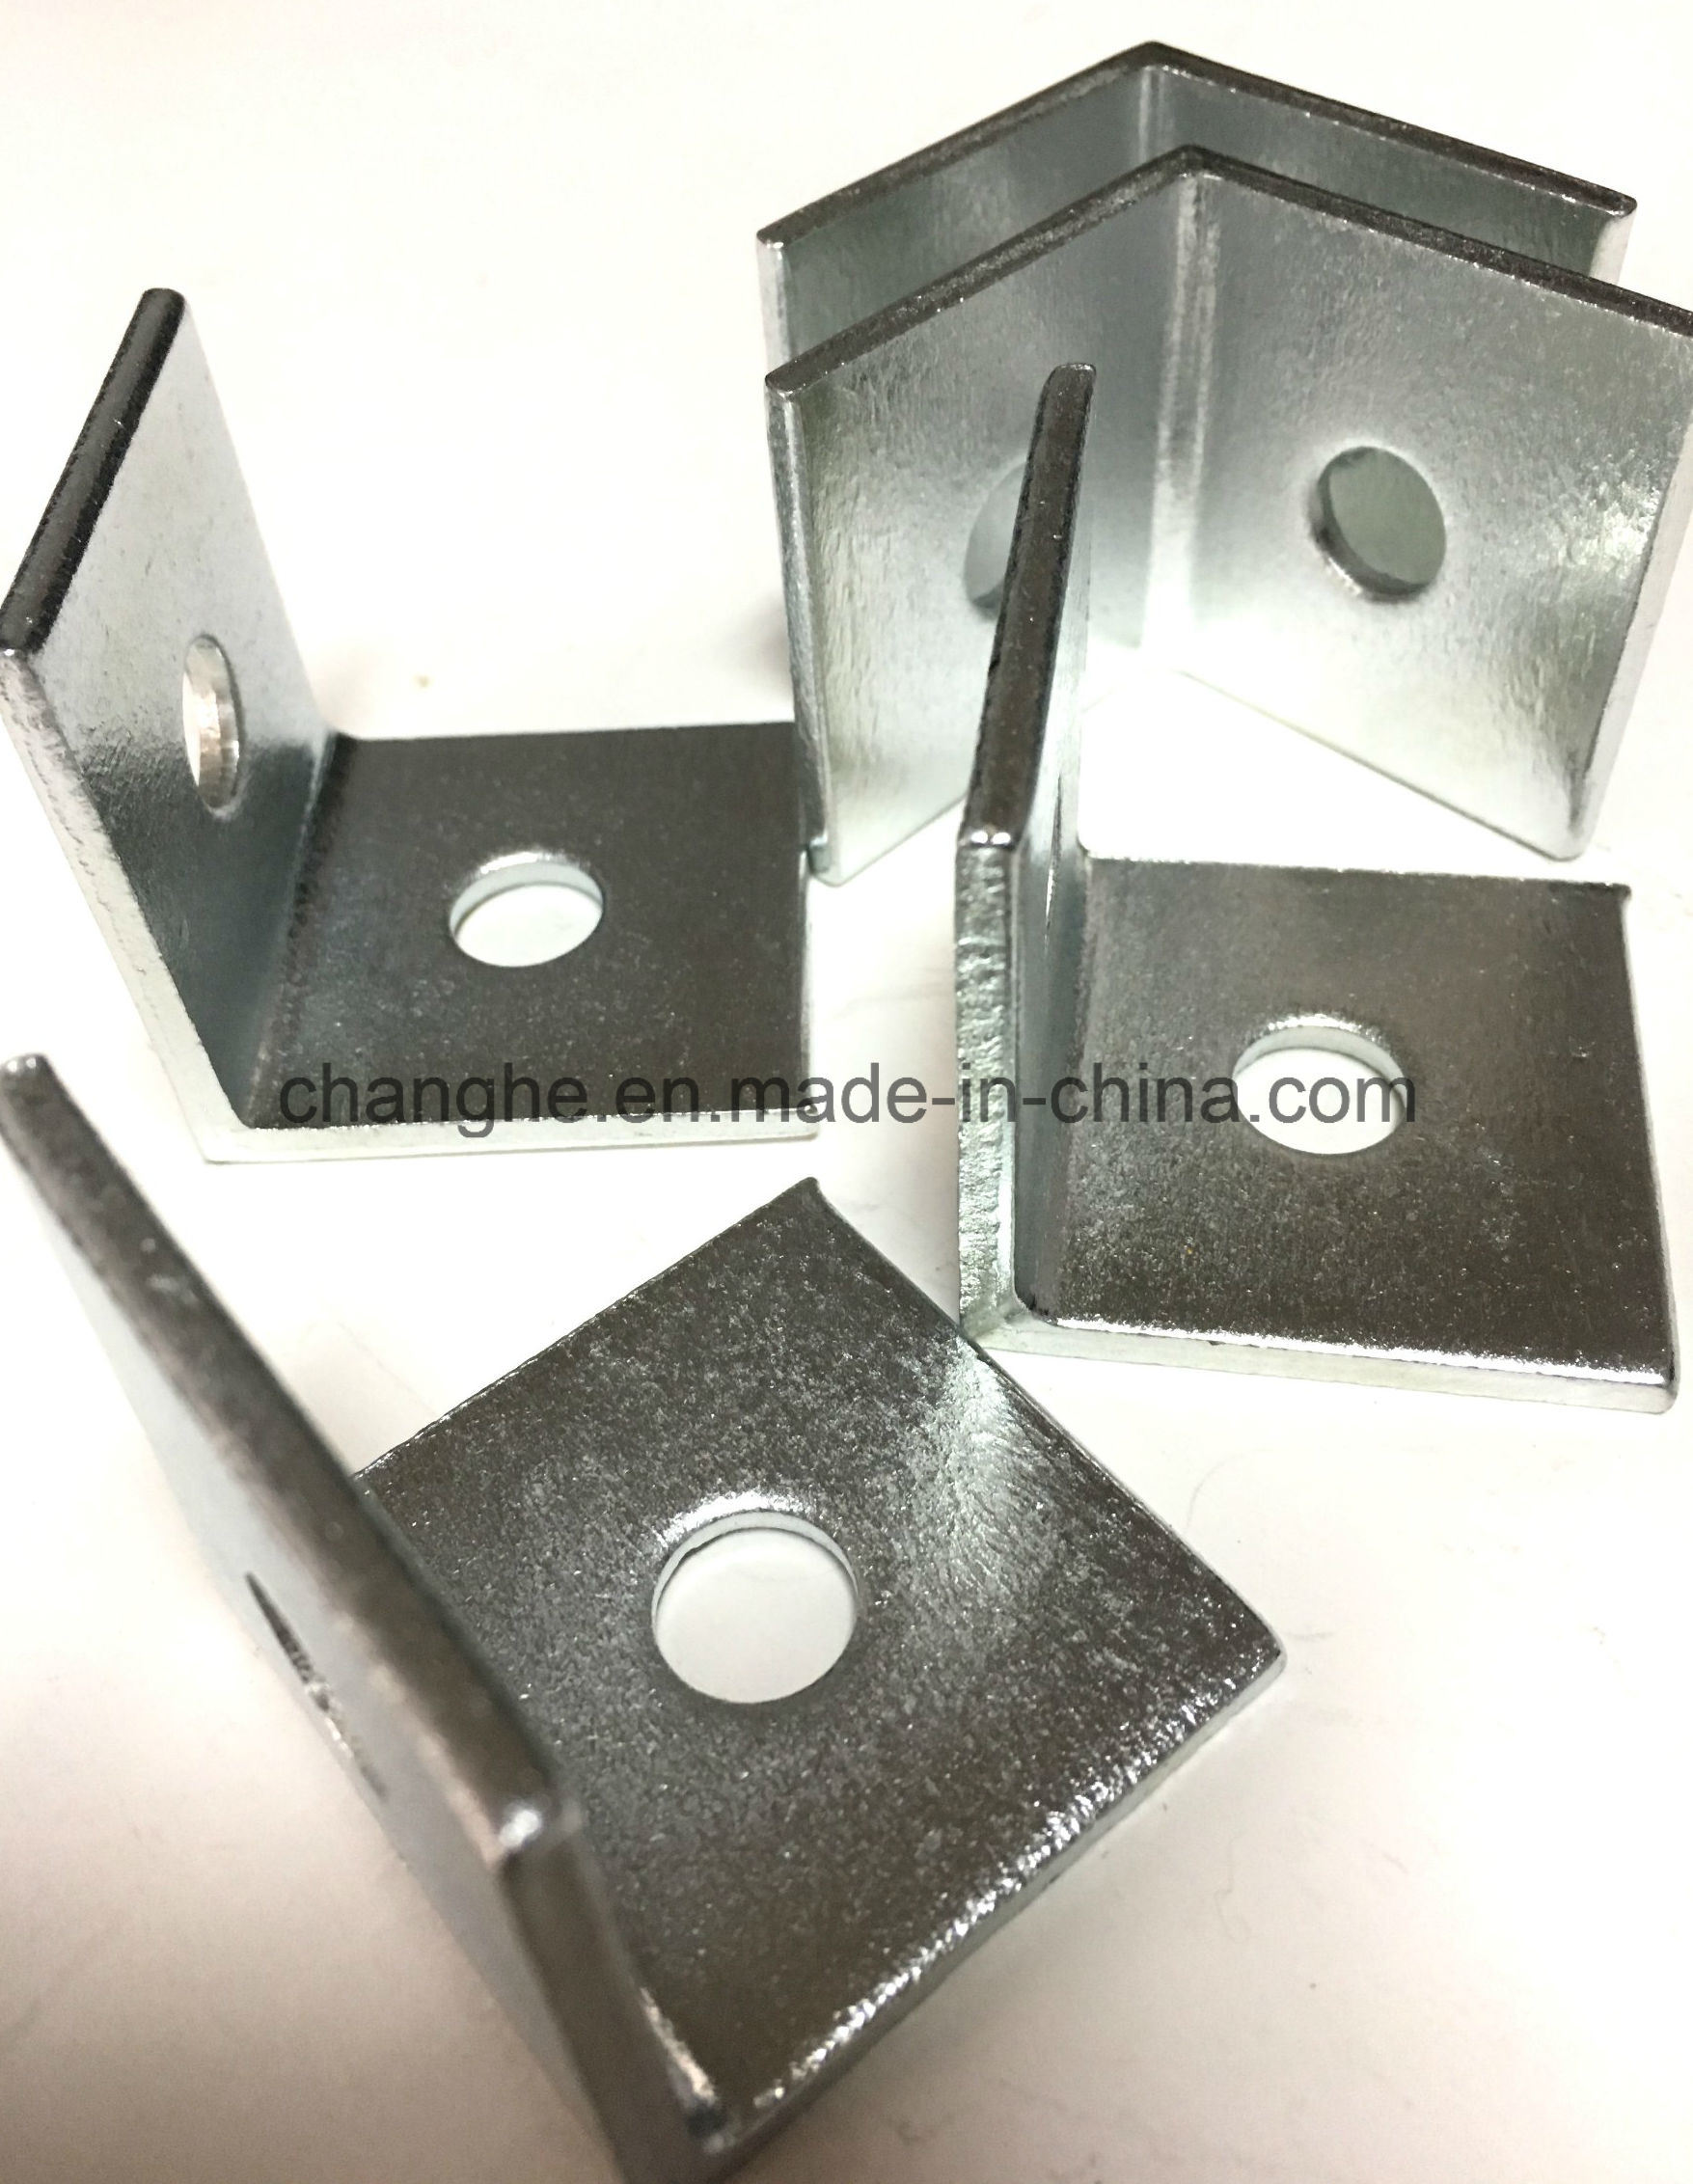 Electroplating Stamping Part with High Qaulity